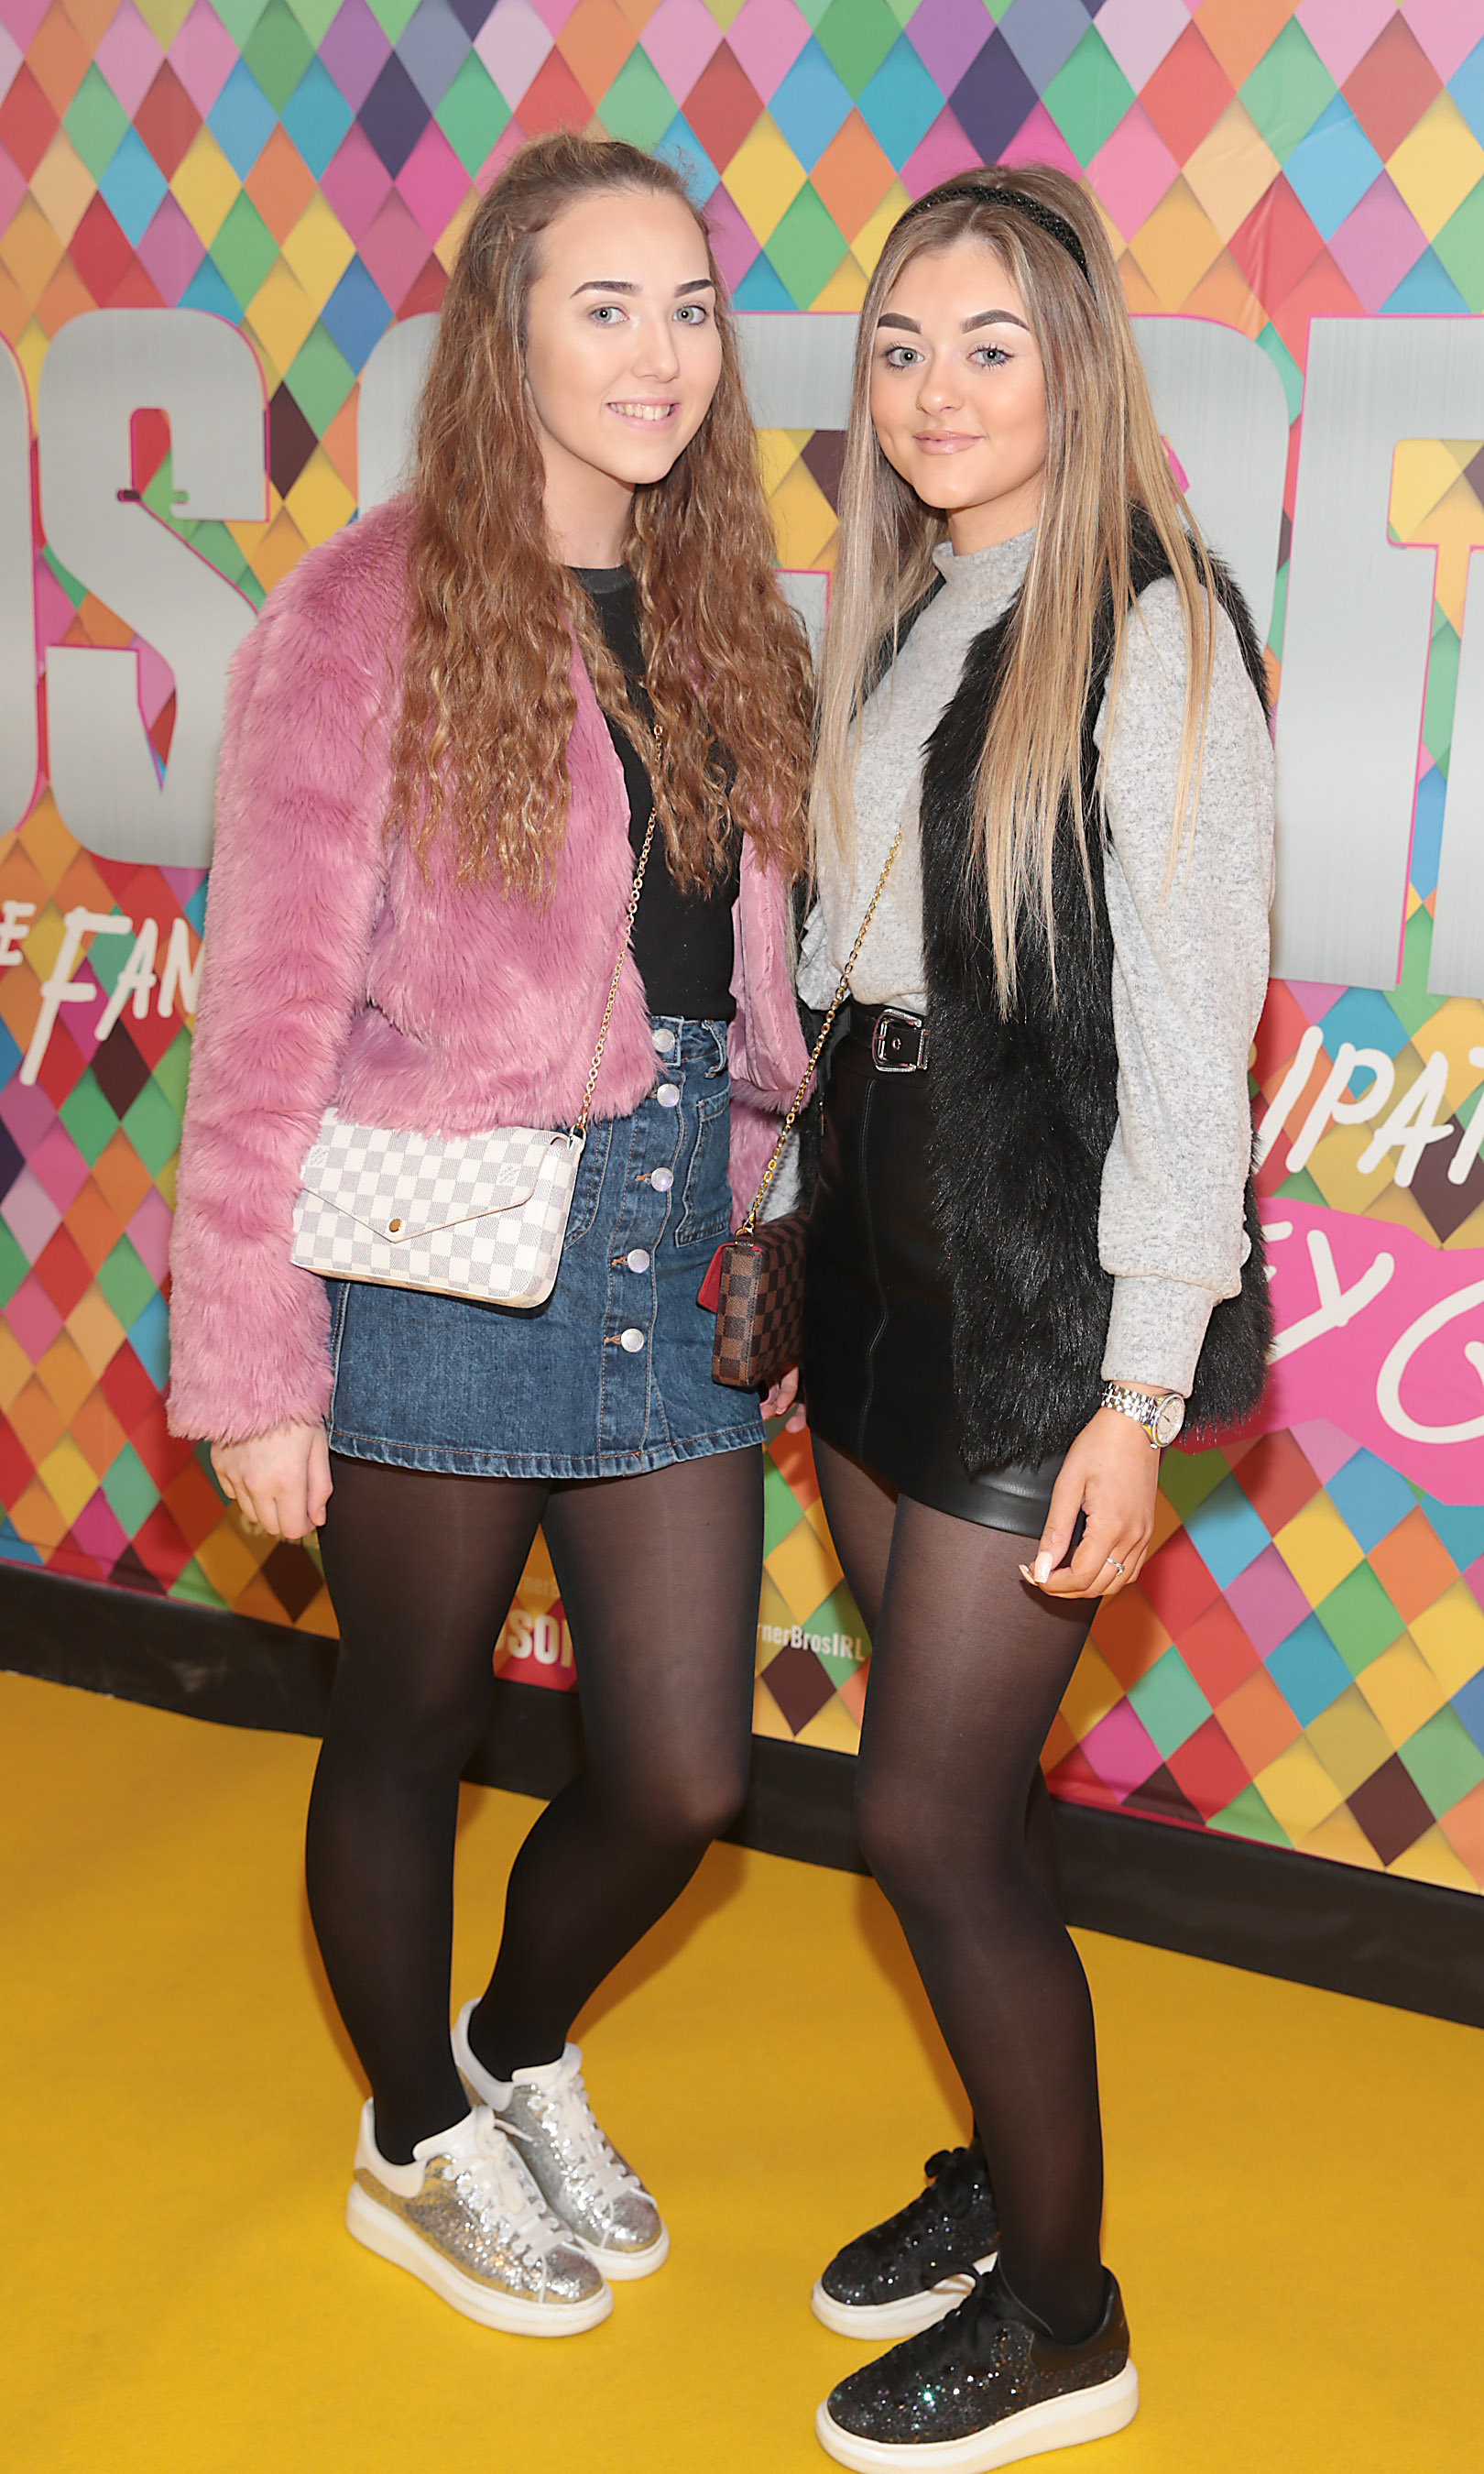 Katie  Smith and Aoife Gleeson at the Irish Premiere screening of Birds of Prey at Cineworld, Dublin. Pic: Brian McEvoy